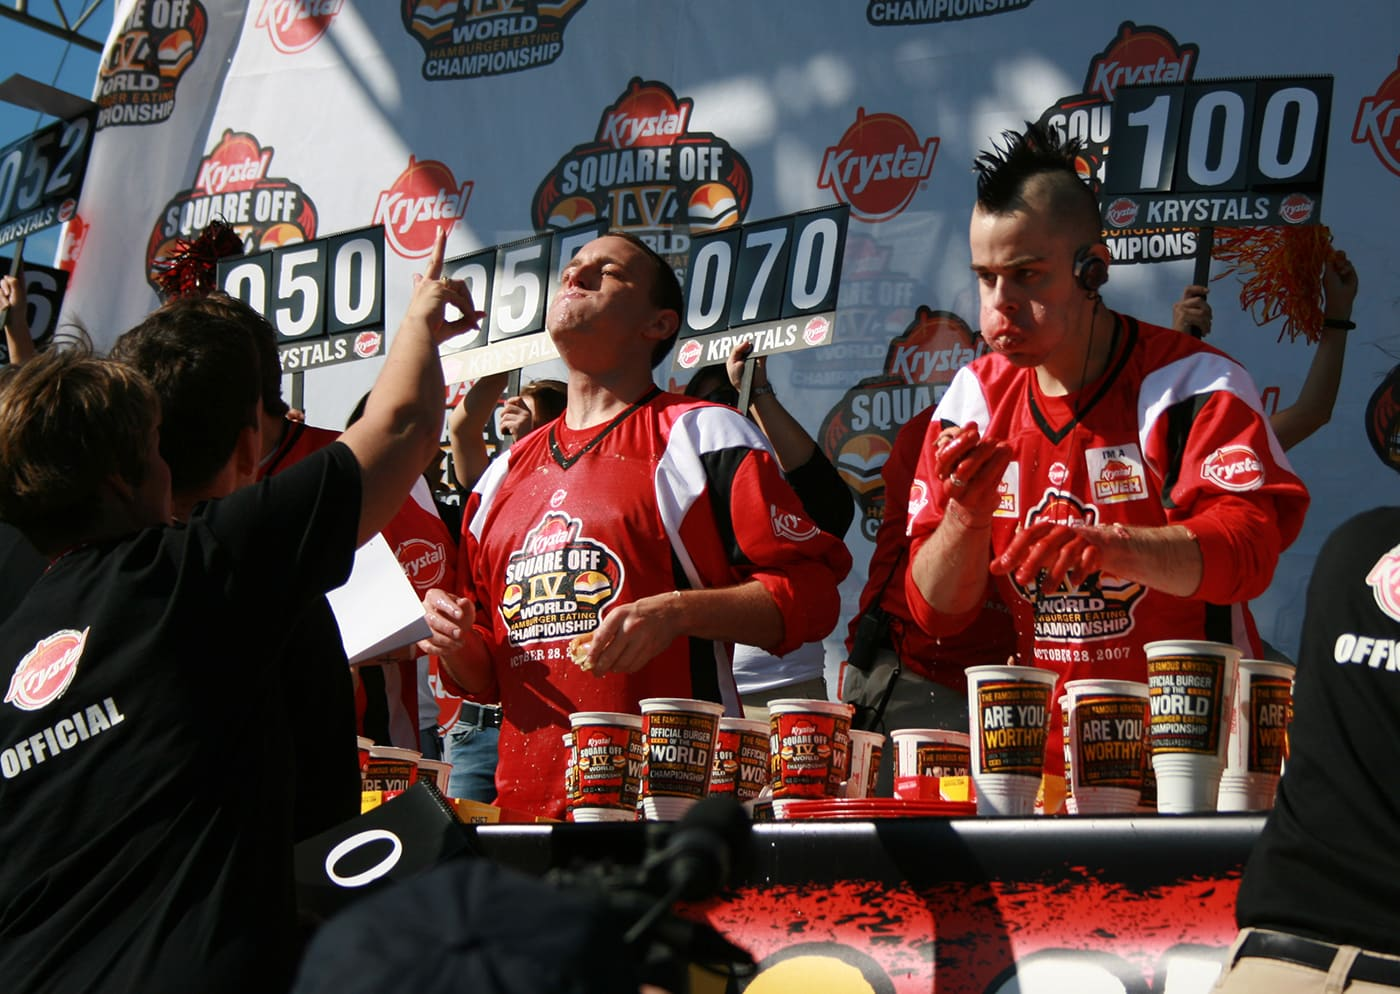 Joey Chestnut and Pat Bertoletti eat at Krystal Square Off IV hamburger eating contest in Chattanooga, Tennessee.